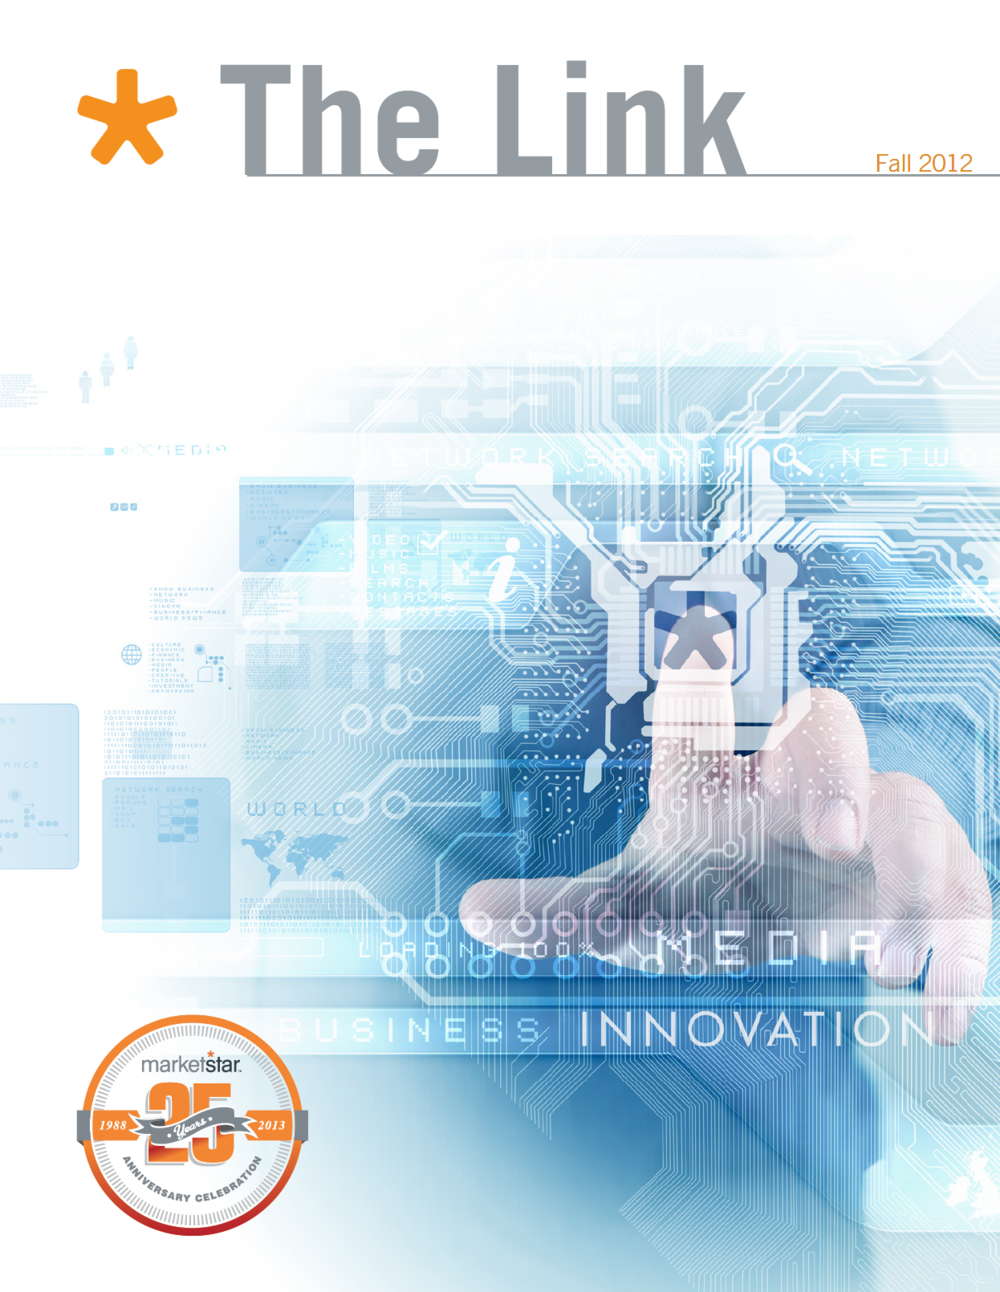 The Link, Fall 2012